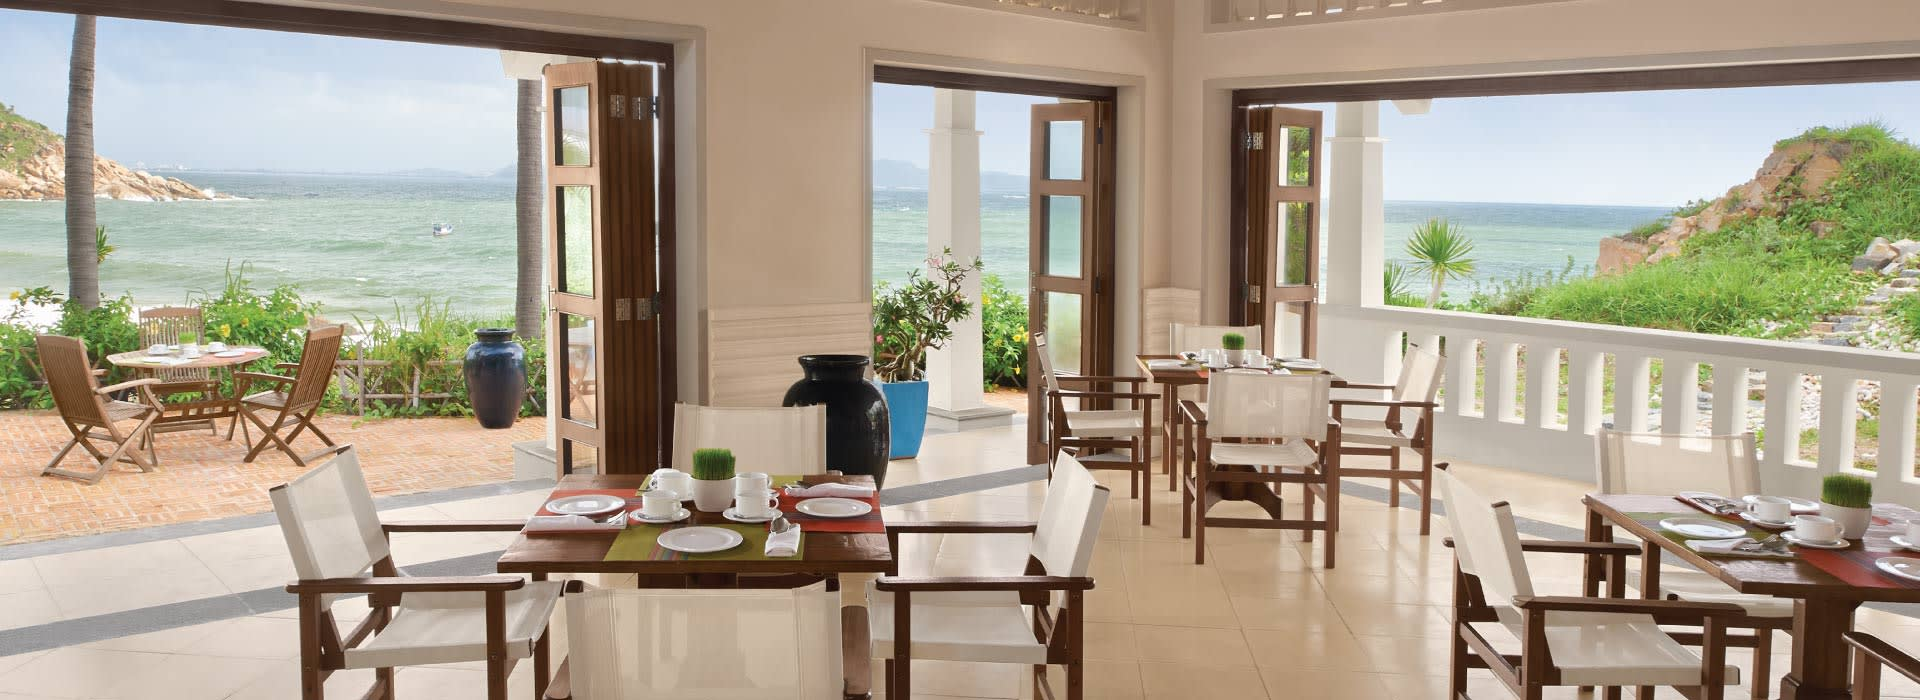 View of the sea from Tre restaurant at AVANI Quy Nhon resort